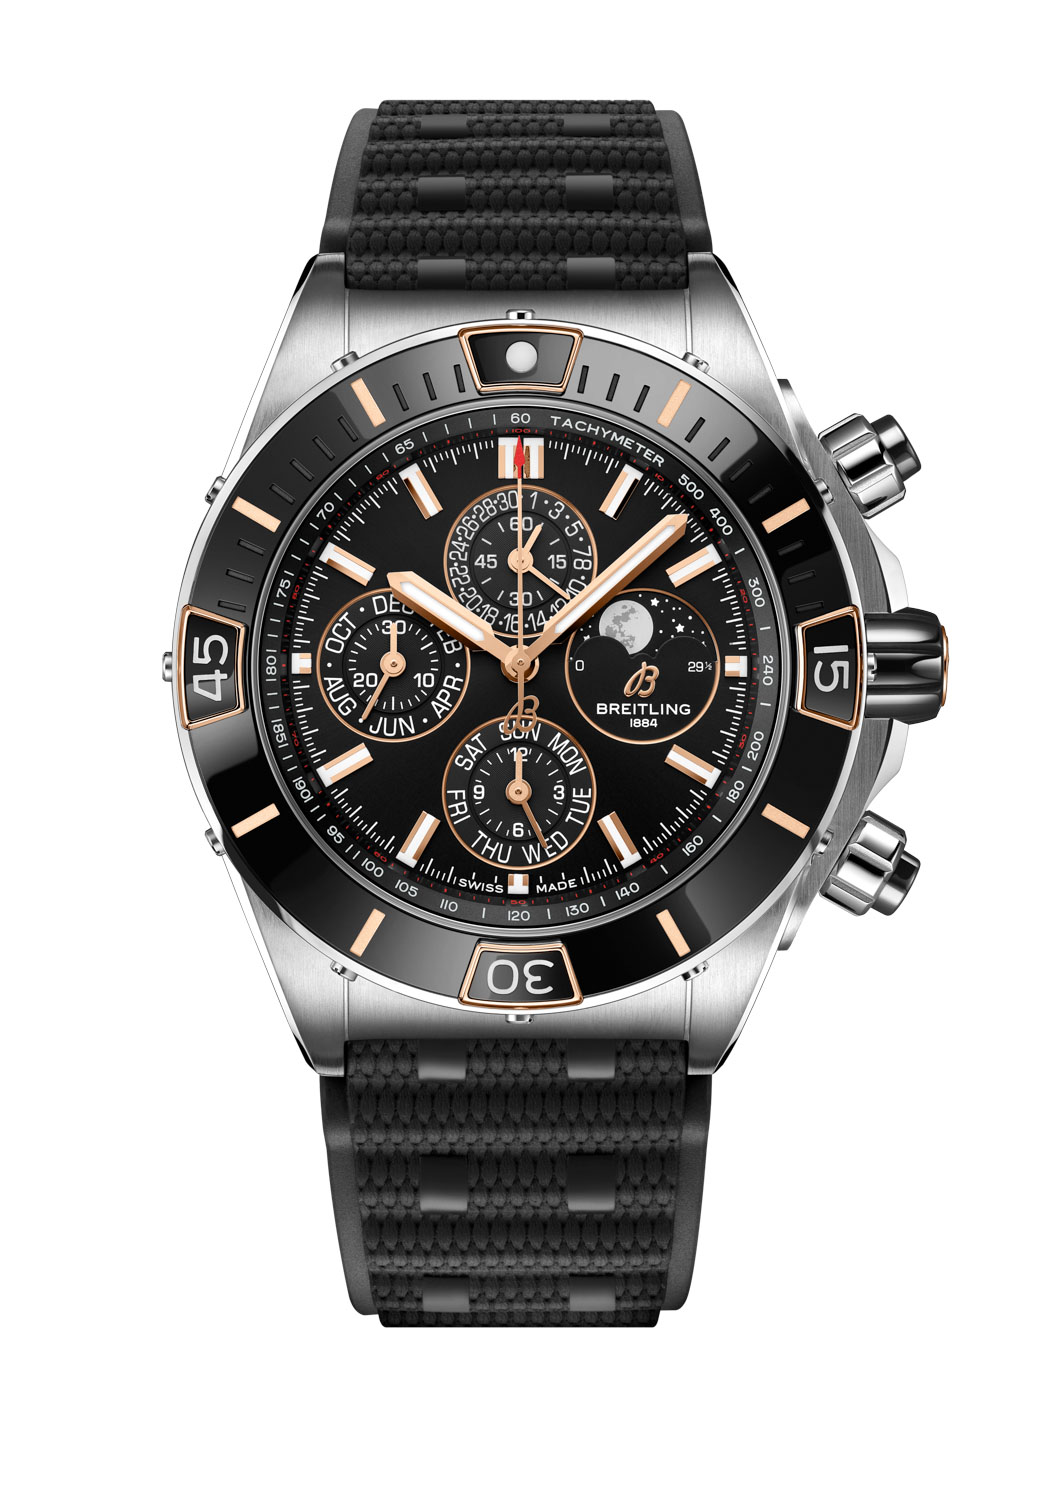 Super Chronomat 44 Four-Year Calendar fitted on a black Rouleaux-inspired rubber strap with folding clasp